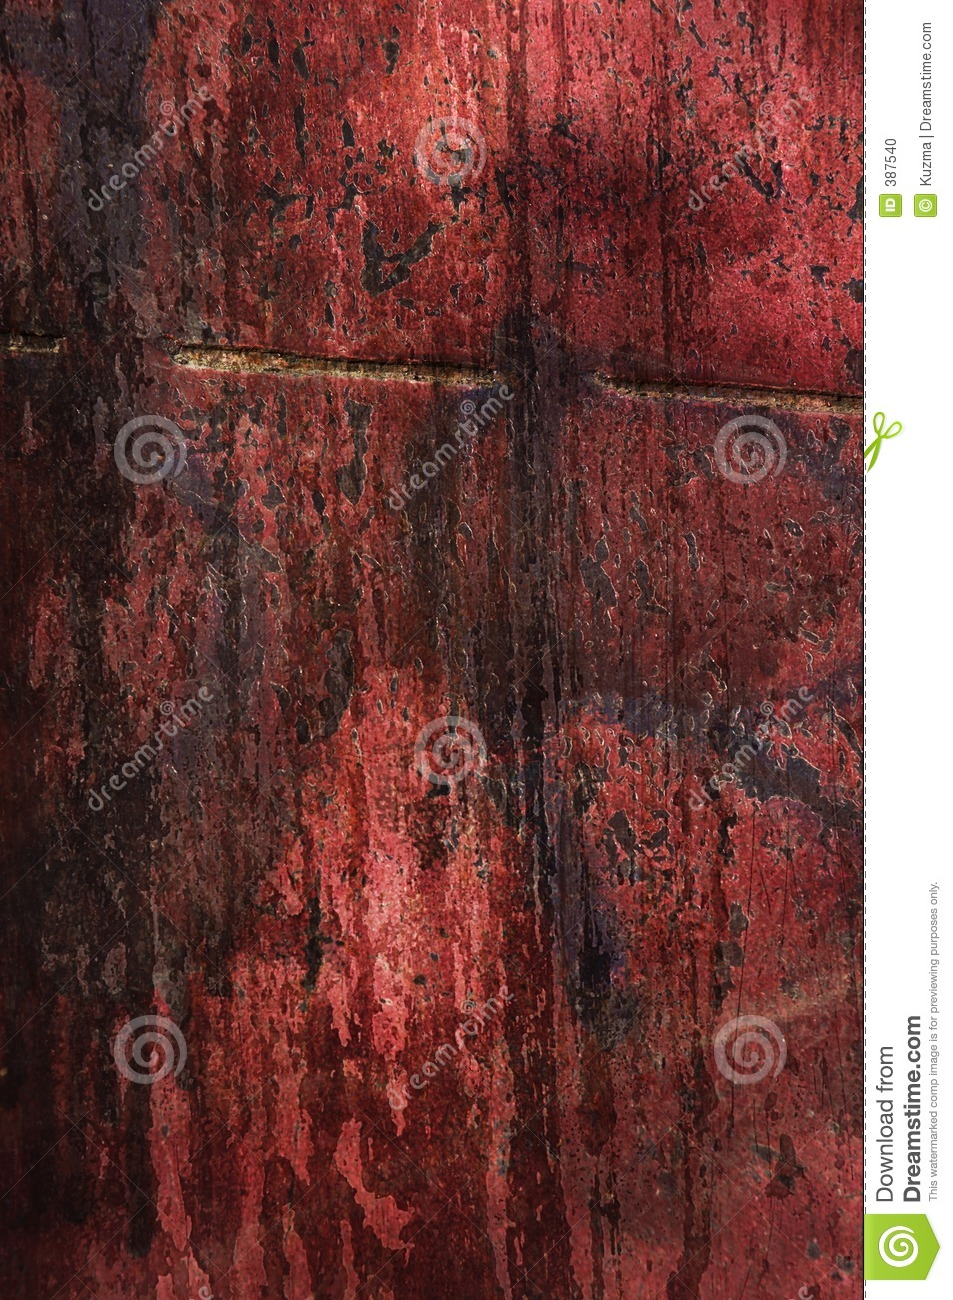 Red grungy texture